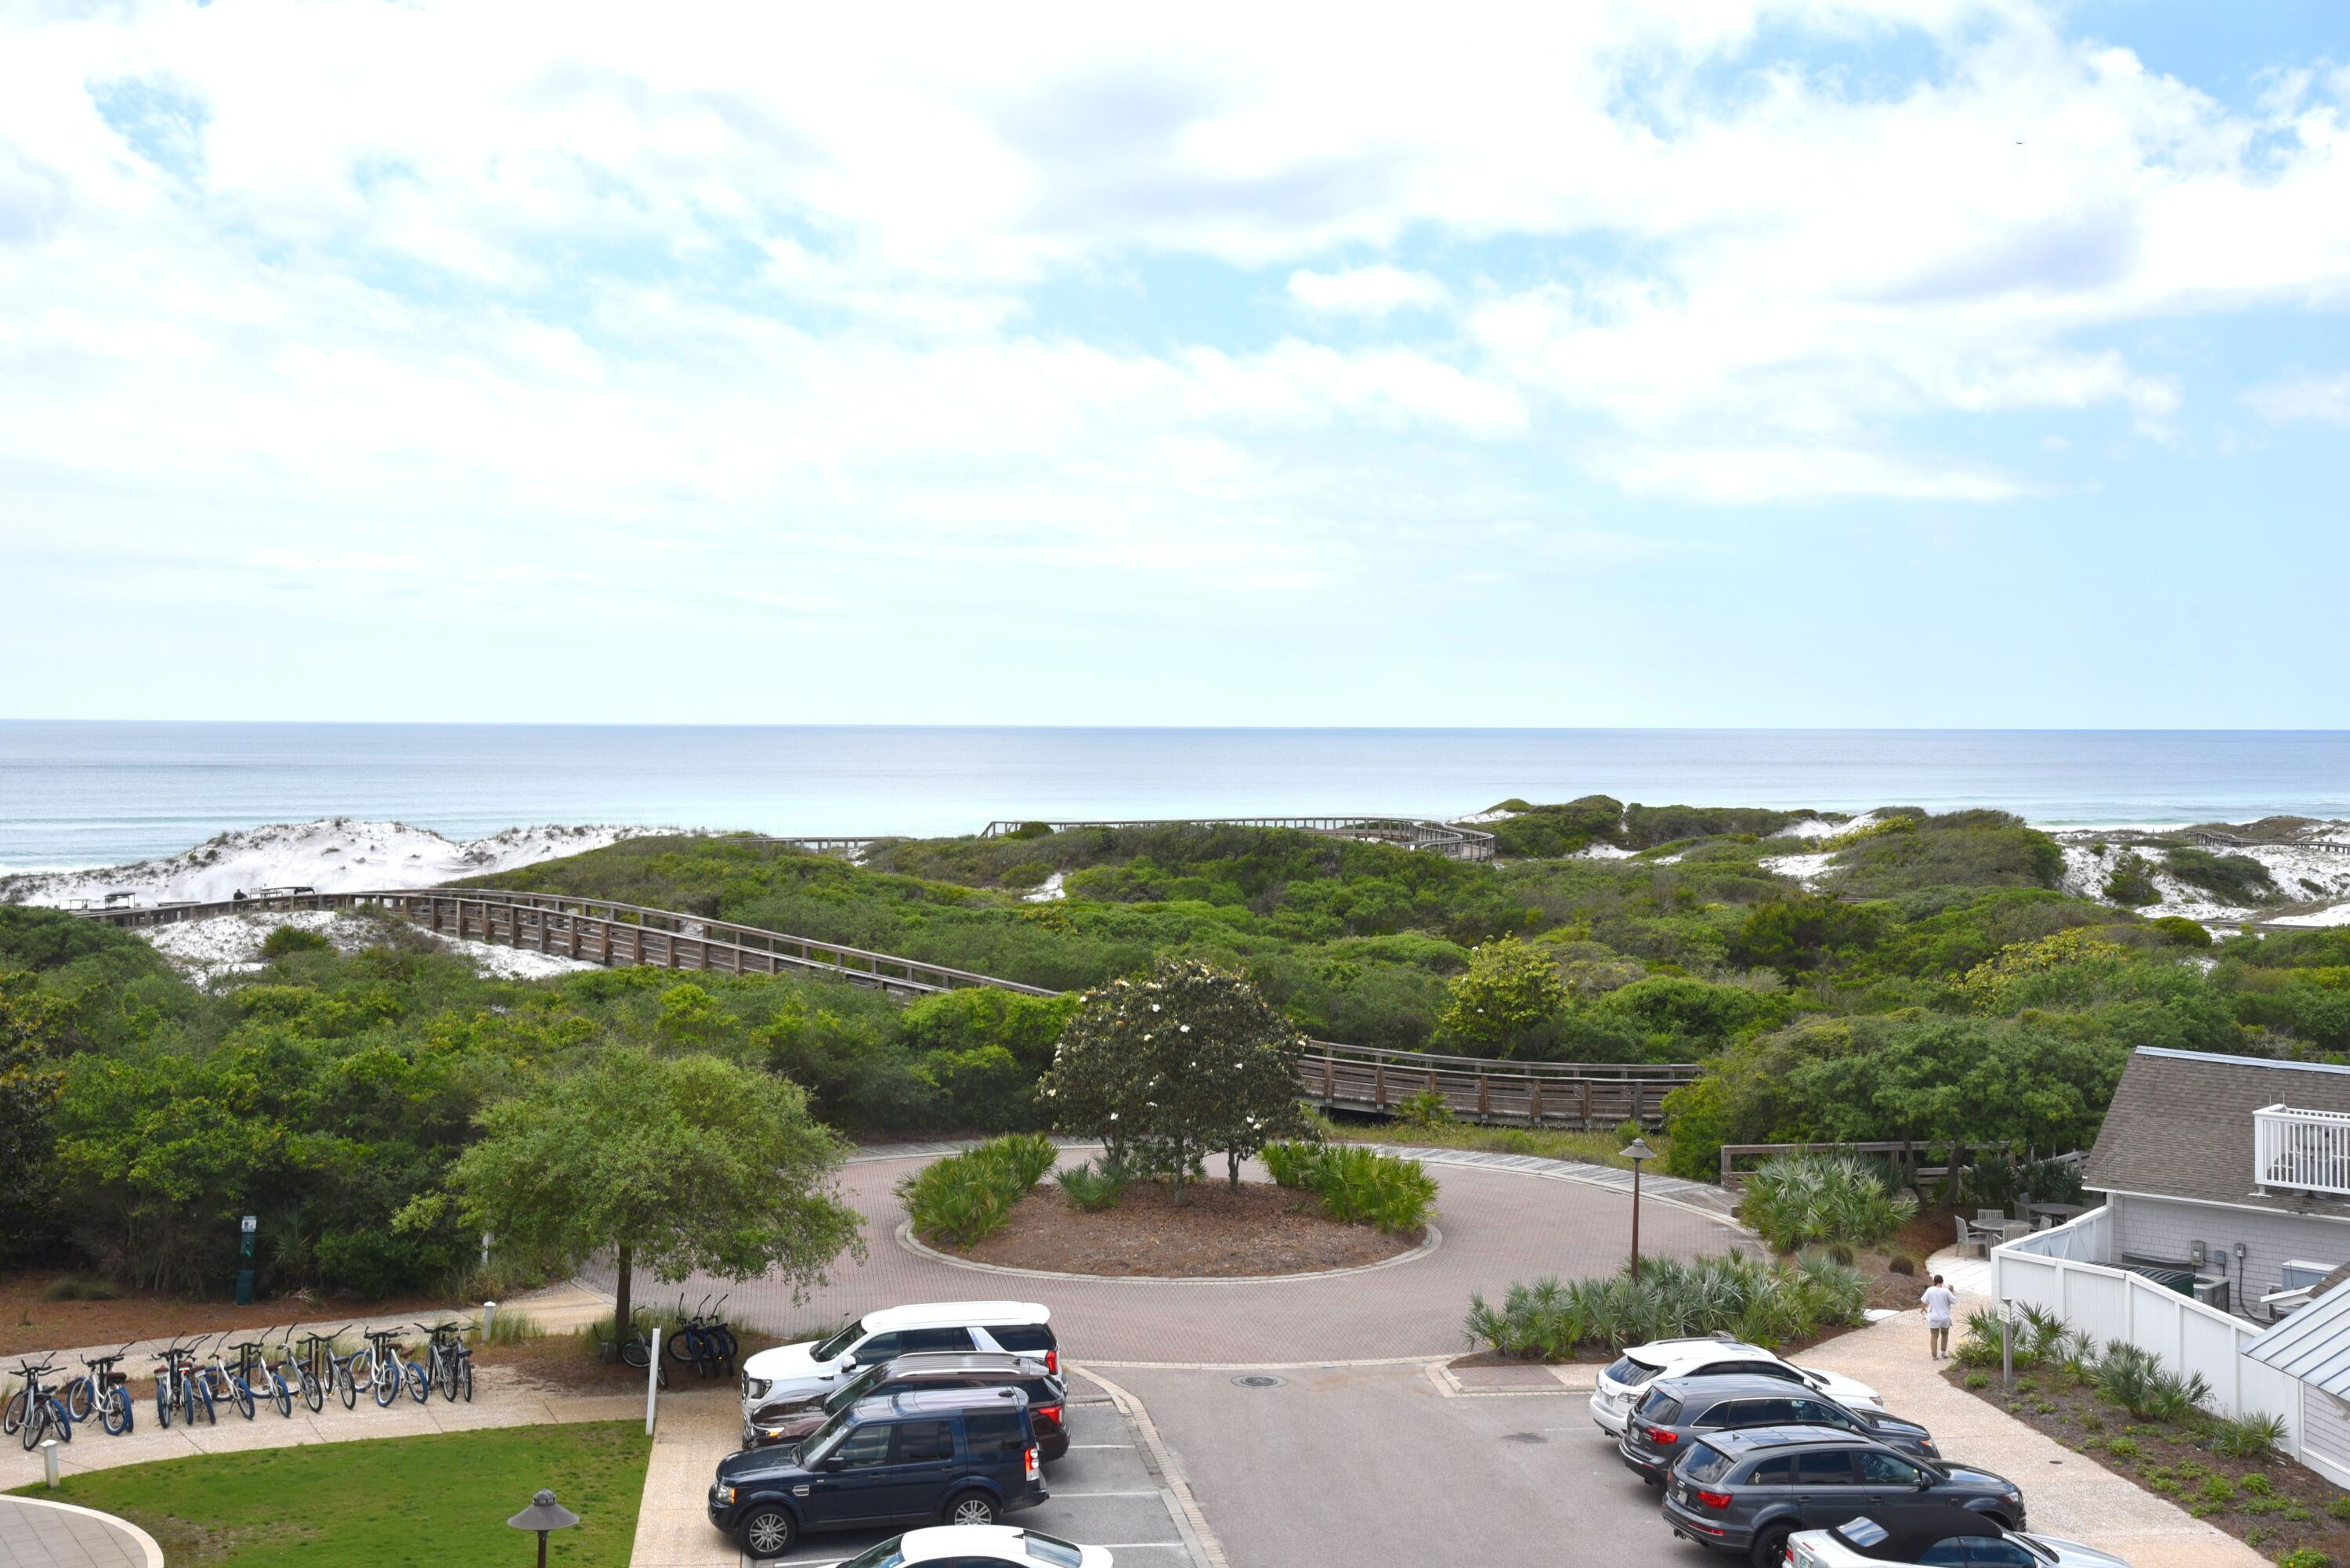 Located in one of the most prestigious communities along the entire Emerald Coast, this spectacular unit offers the top floor, southwest sunset views that have brought all of us to this paradise. Regardless if you wish to keep this hidden gem for yourselves, or enjoy healthy cash-flow, this experience is your windfall for the taking.  This two-bedroom, two-bath condo features a wrap-around balcony overlooking the Gulf, shoreline, community pool and equally beautiful residences.  This quiet, rust